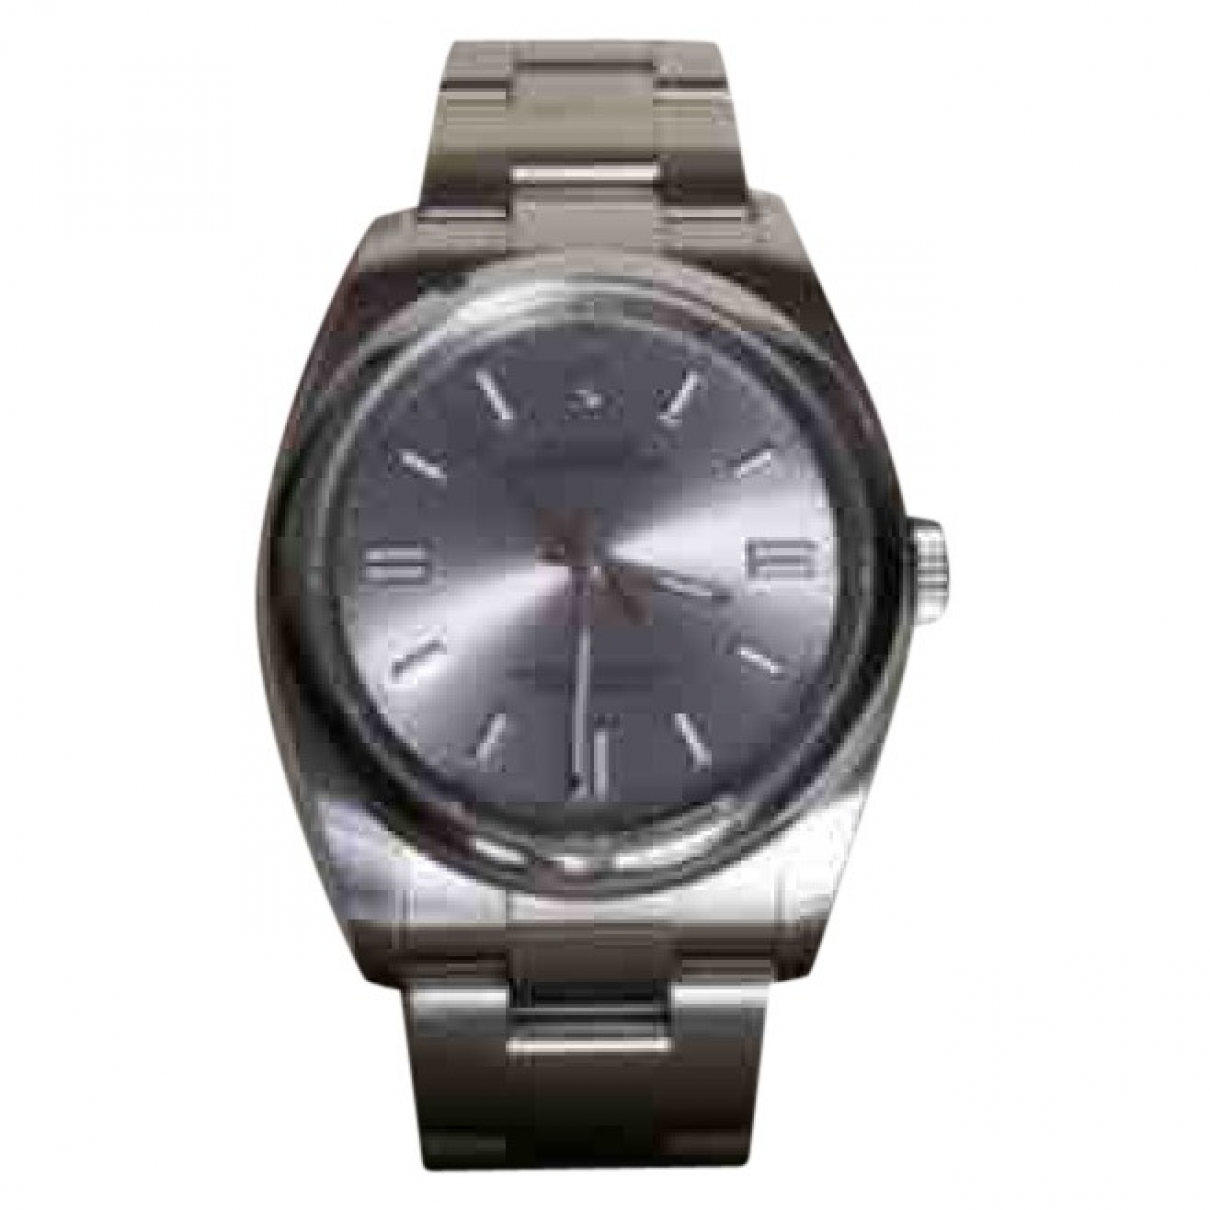 Rolex Oyster Perpetual 36mm Uhr in  Silber Stahl